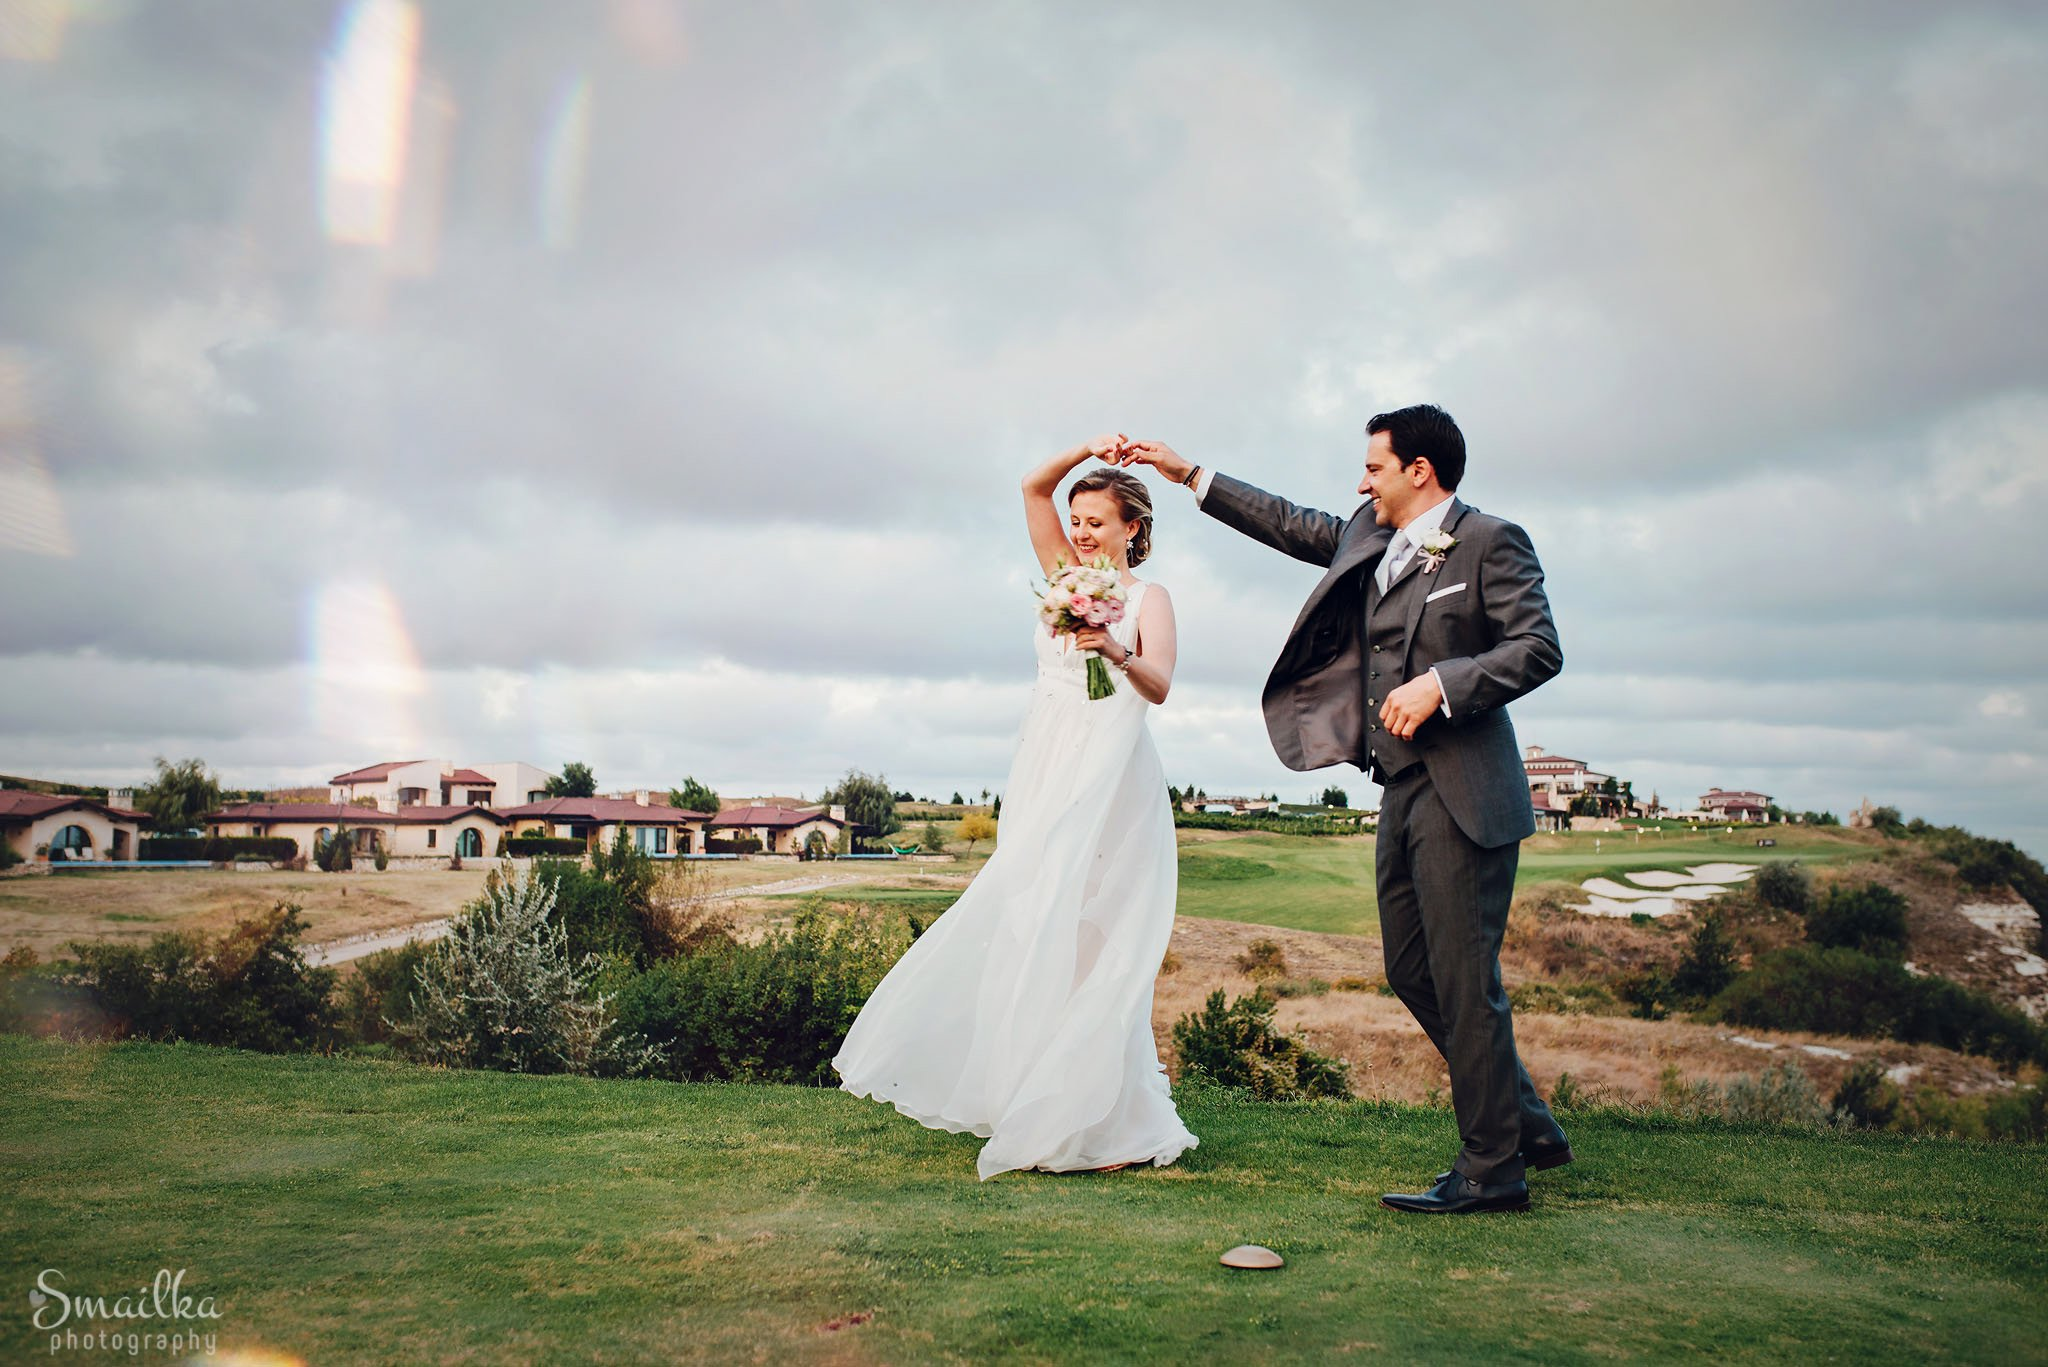 Wedding couple dancing photo session at Black Sea Rama